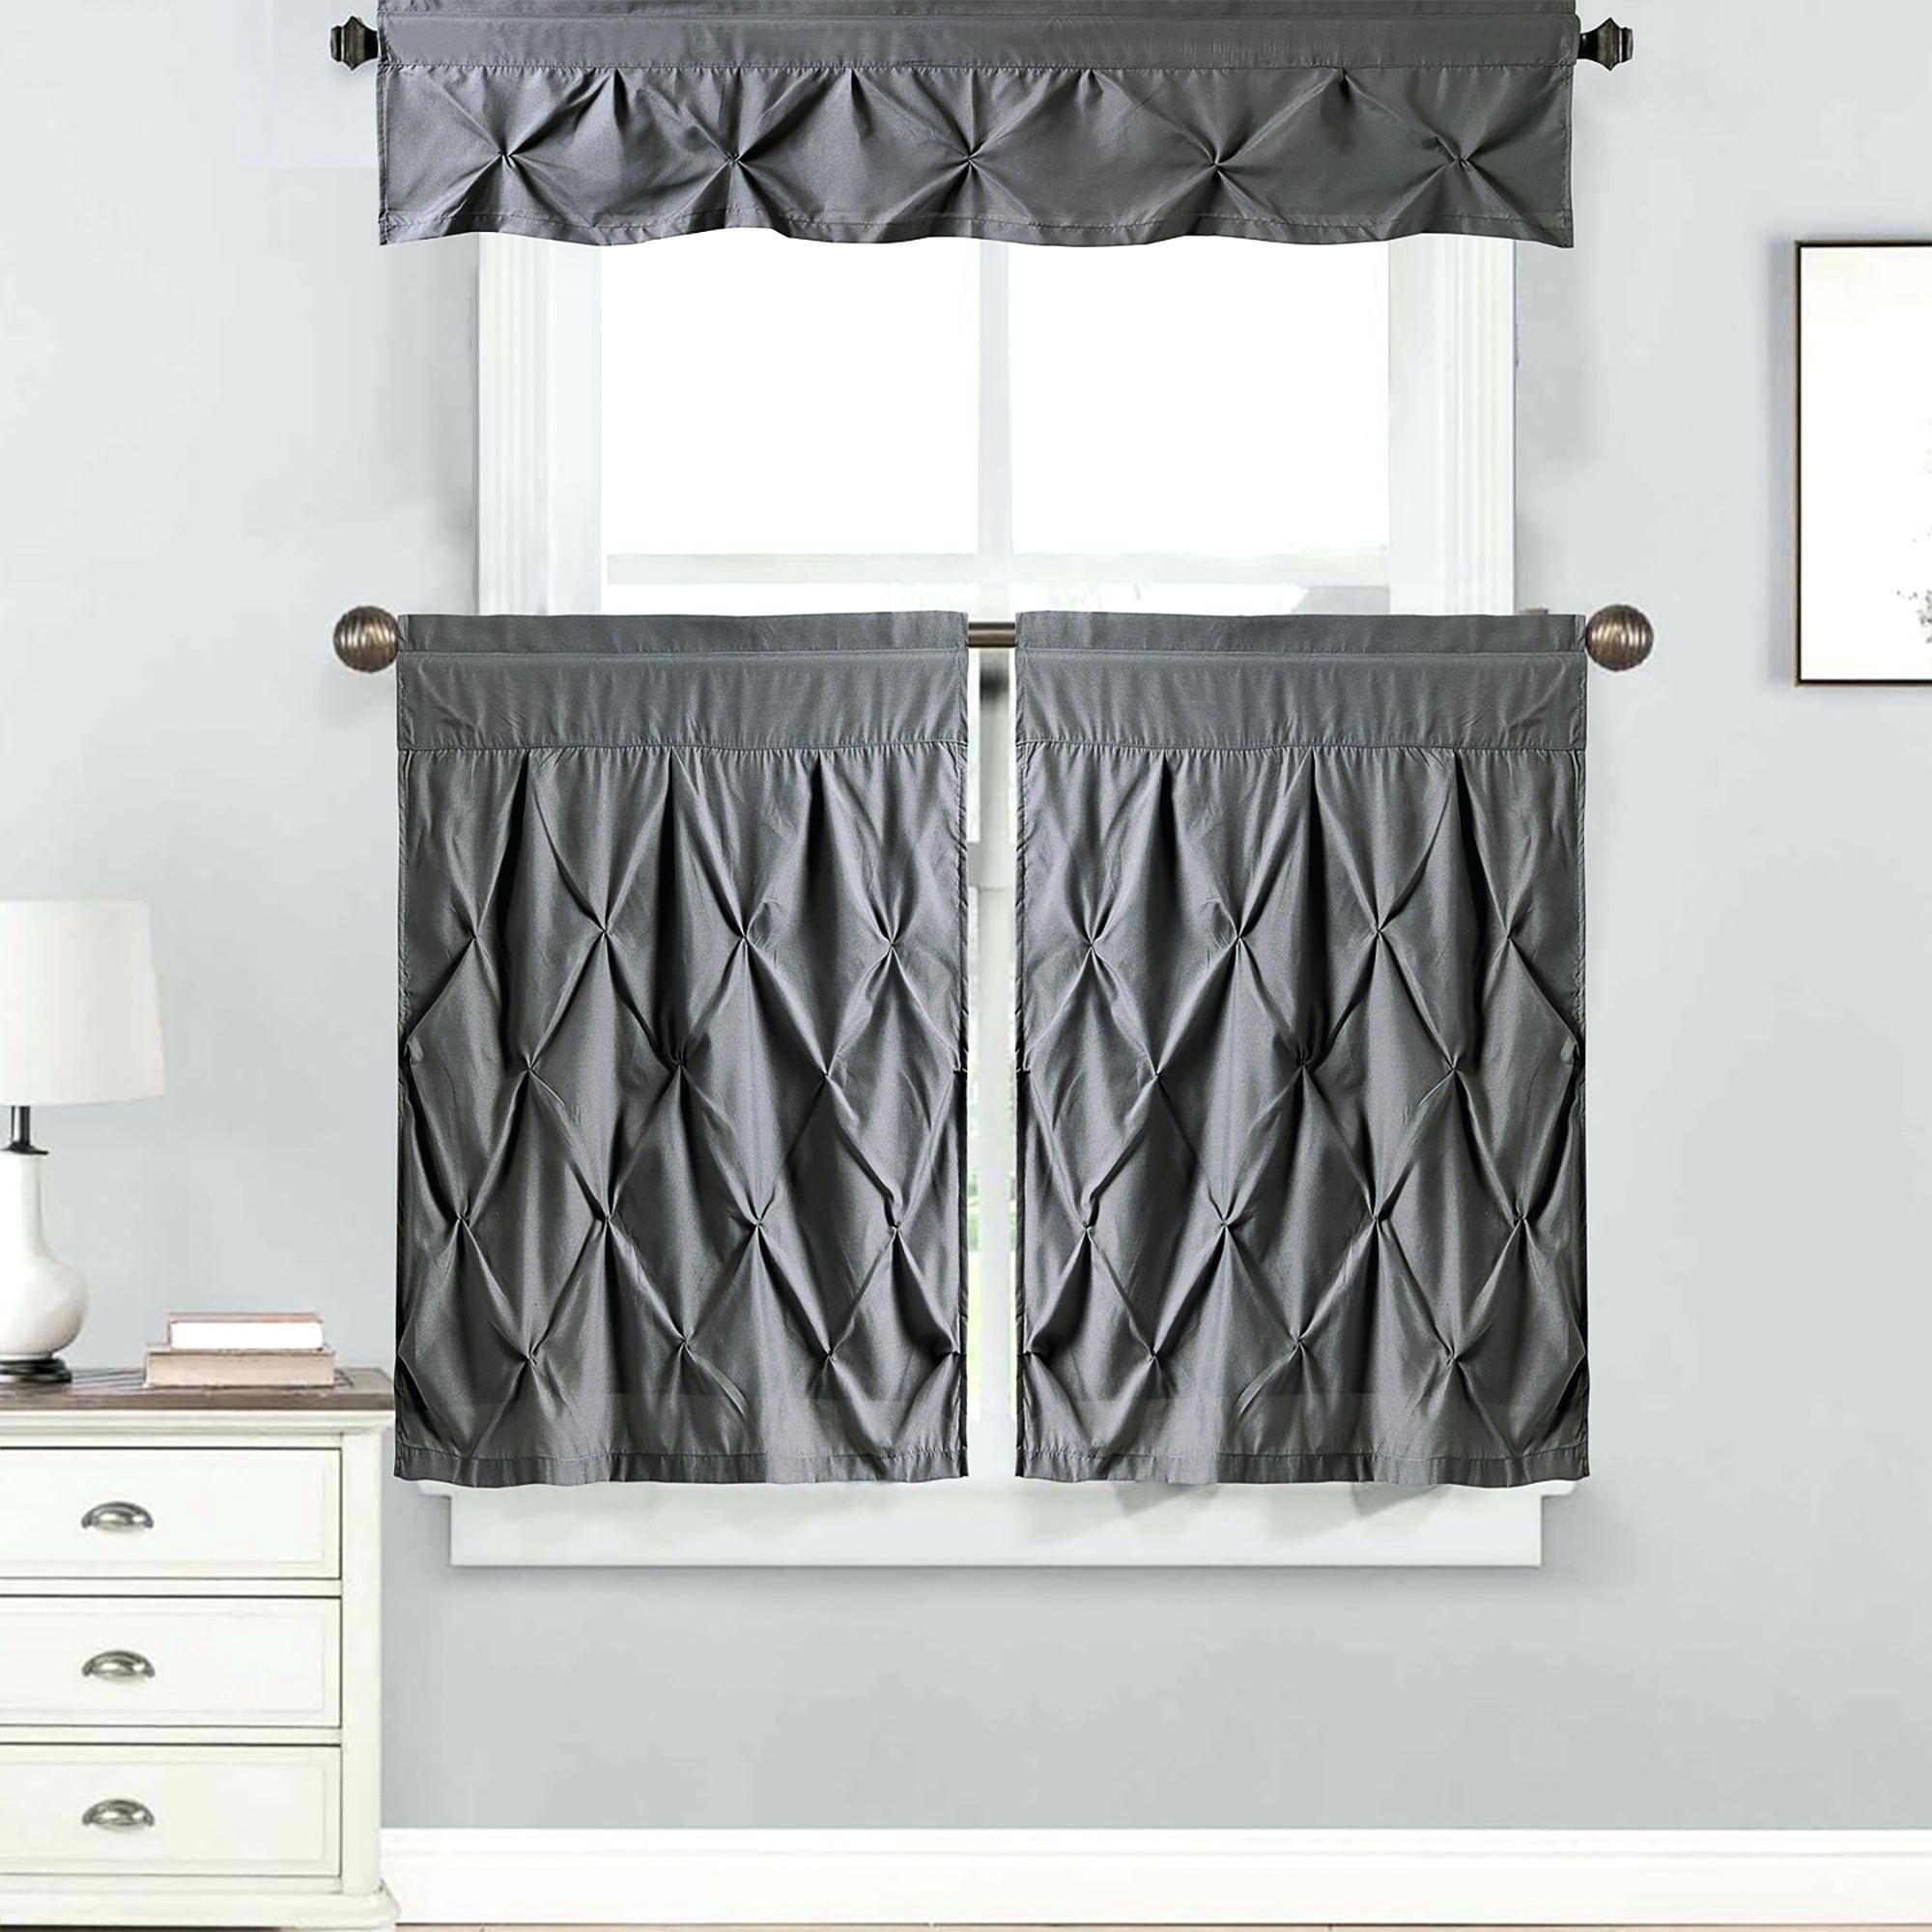 Curtain Sets With Valance – Mnkskin Throughout Chocolate 5 Piece Curtain Tier And Swag Sets (View 11 of 20)